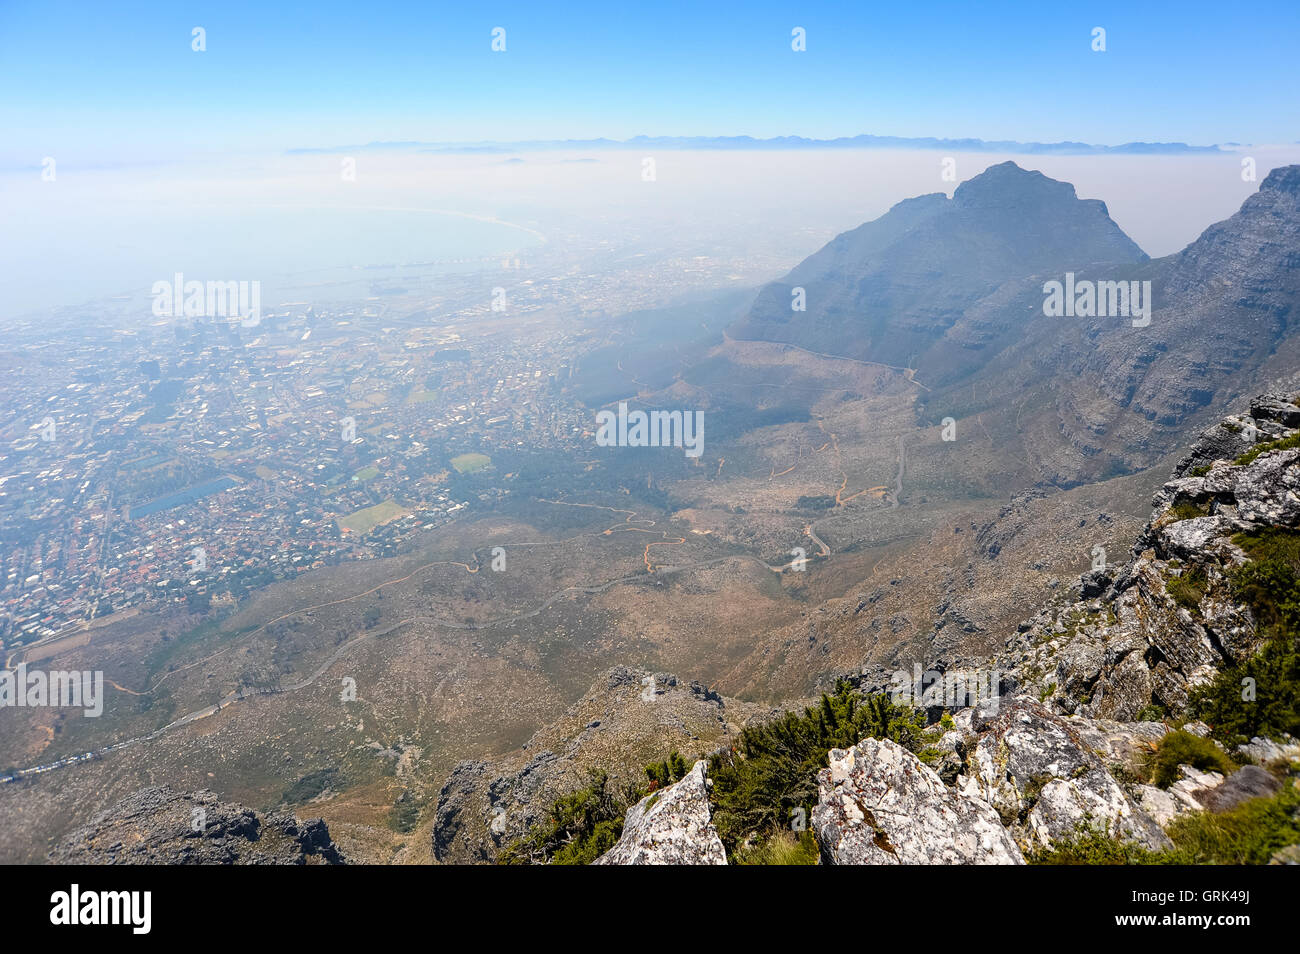 Table Mountain is a flat mesa  overlooking the city of Cape Town in South Africa. Devil's Peak to the east. - Stock Image